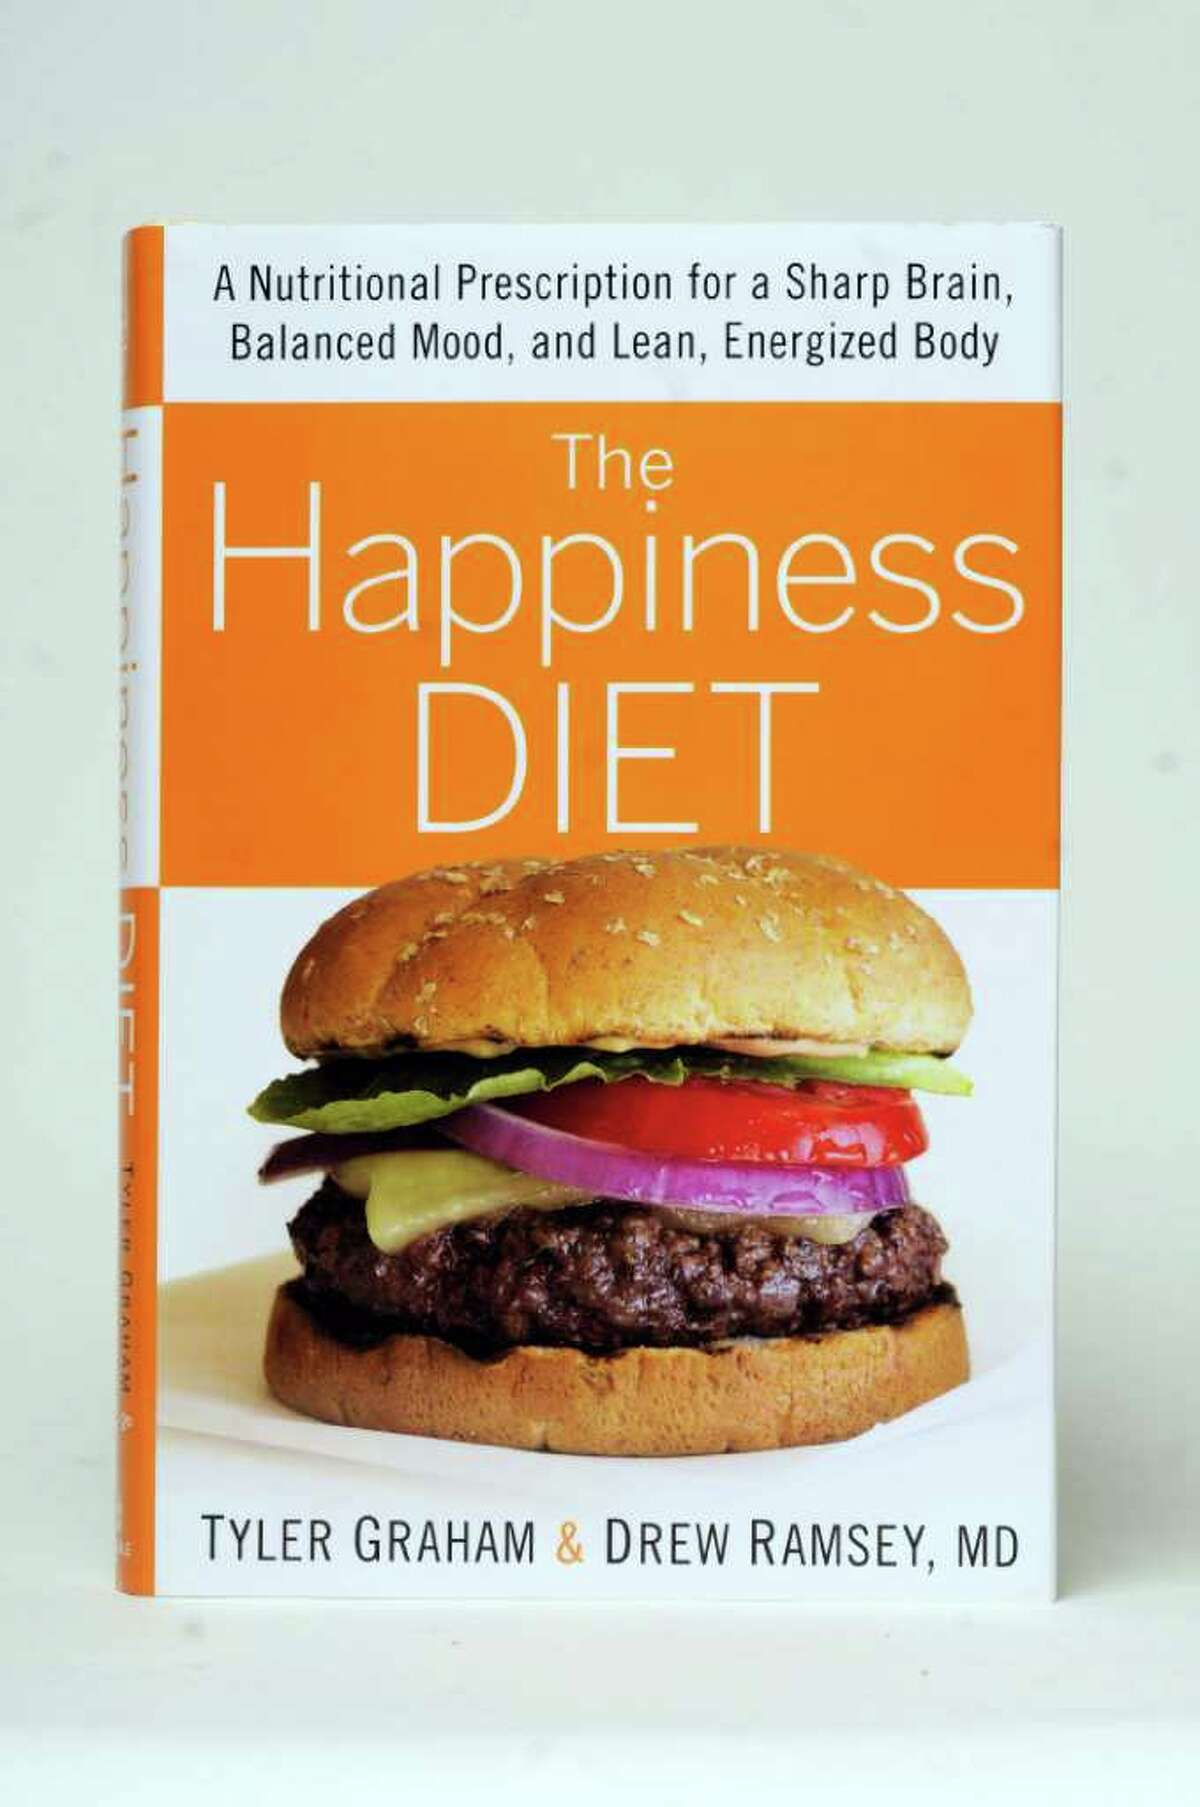 The Happiness Diet by Tyler Graham & Drew Ramsey,MD.